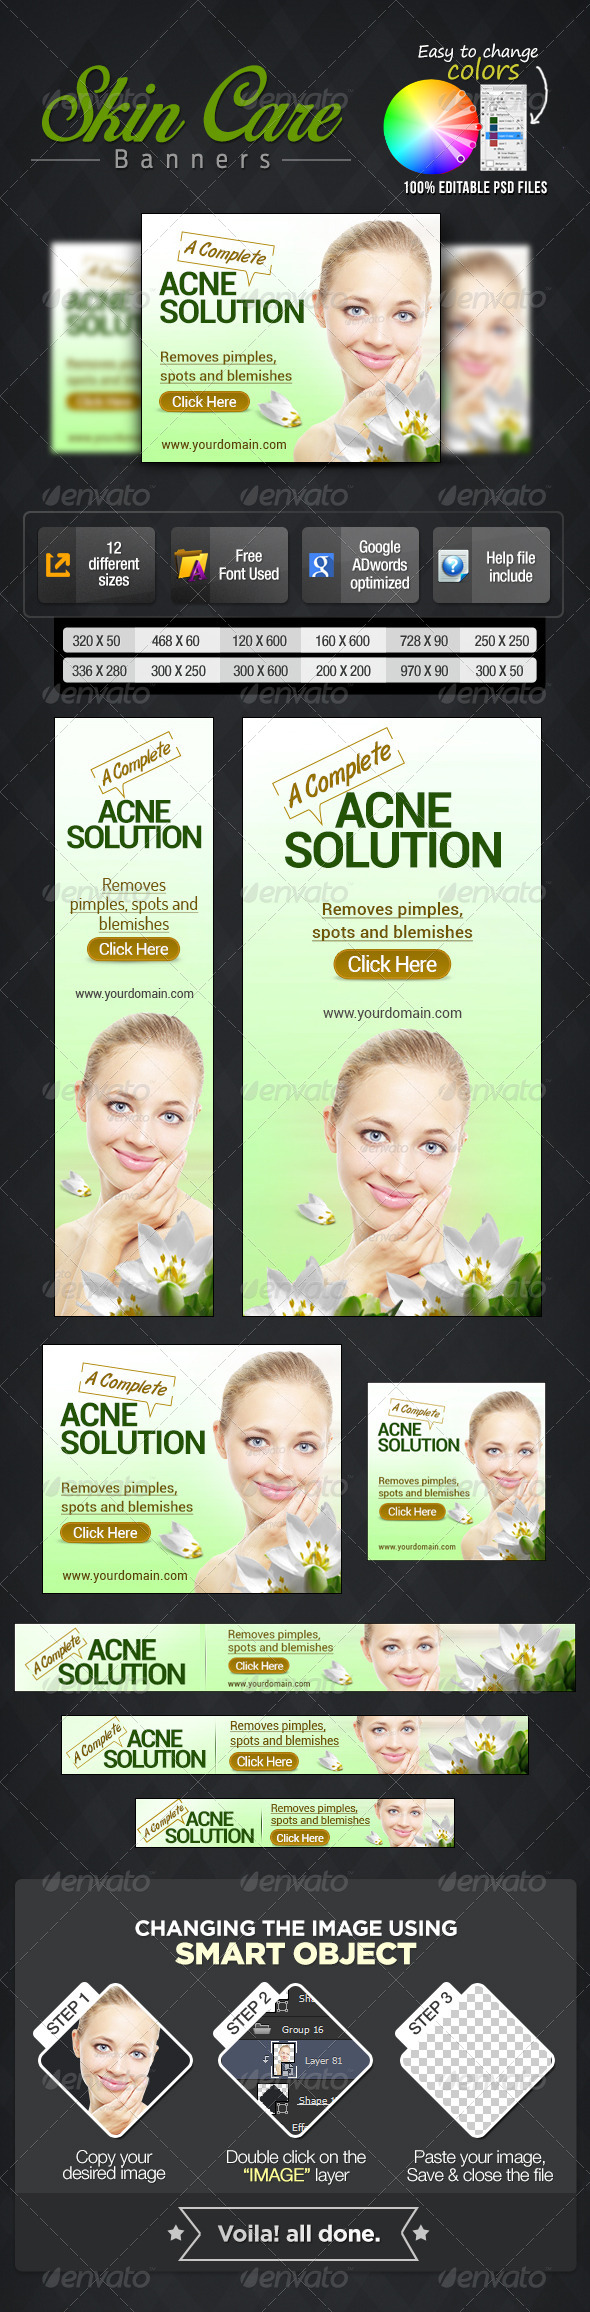 Banner Set for Skin Care Products - Banners & Ads Web Elements